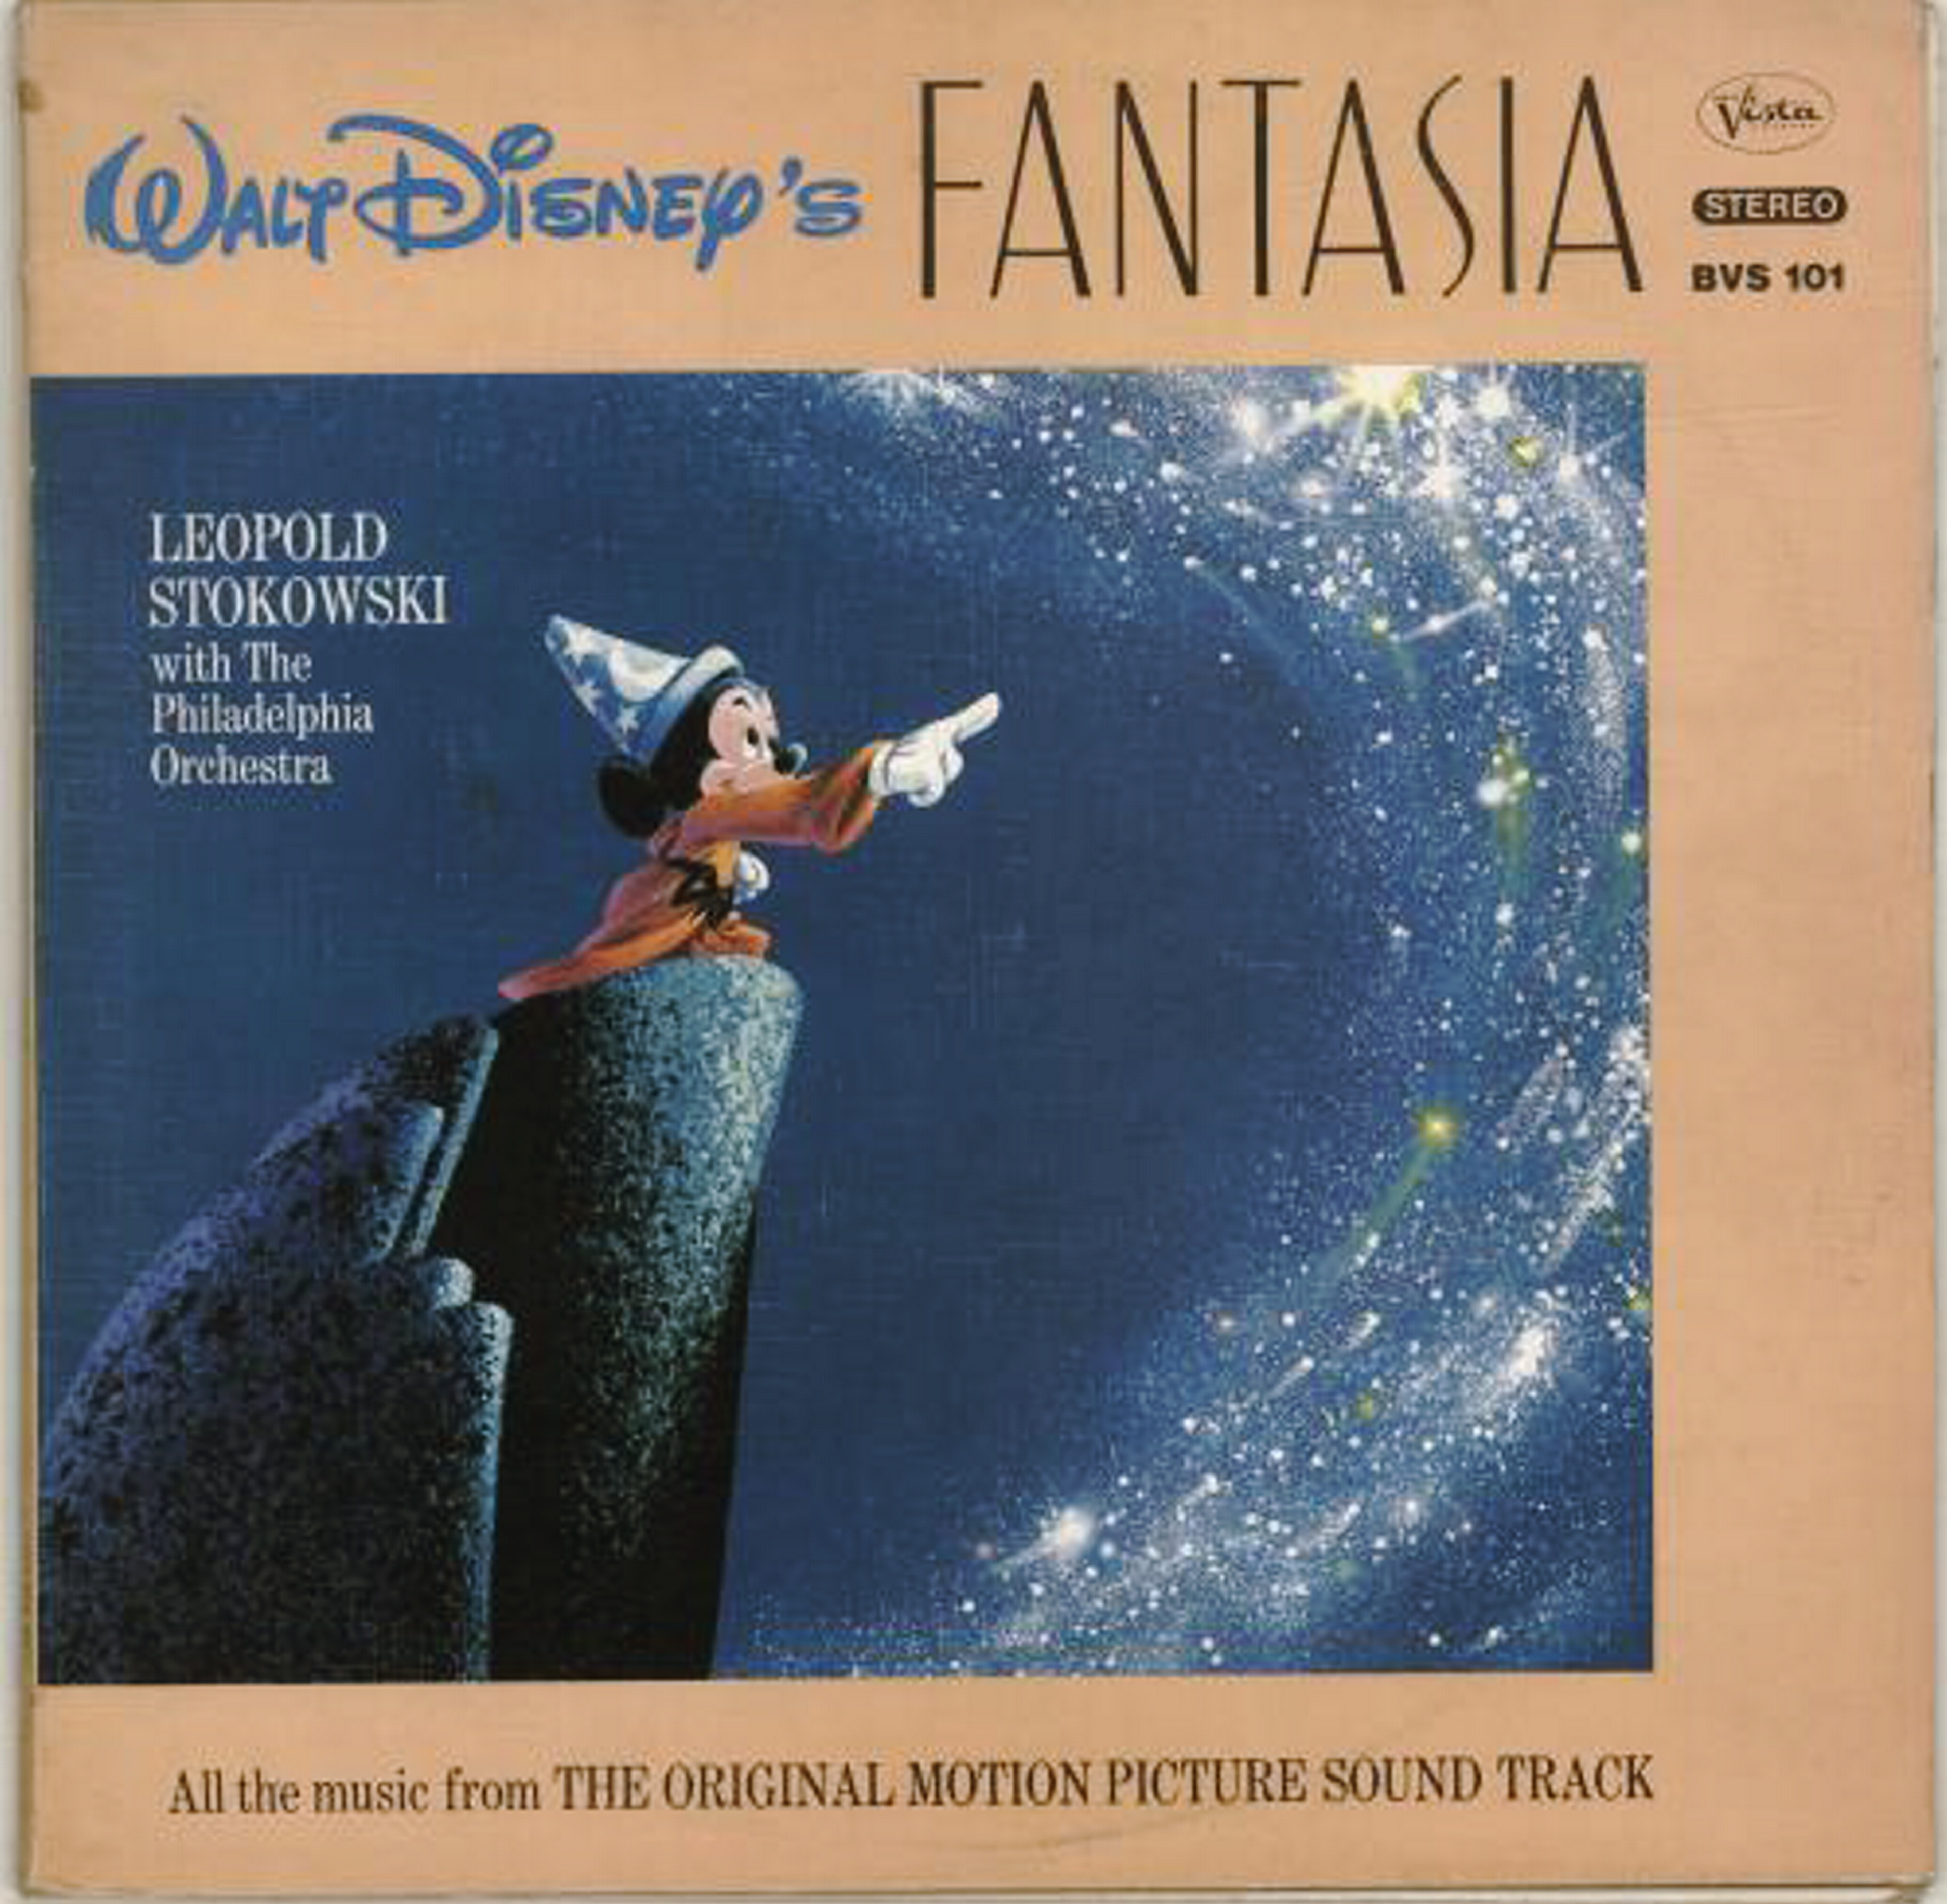 Film scores that are the great classical music of today